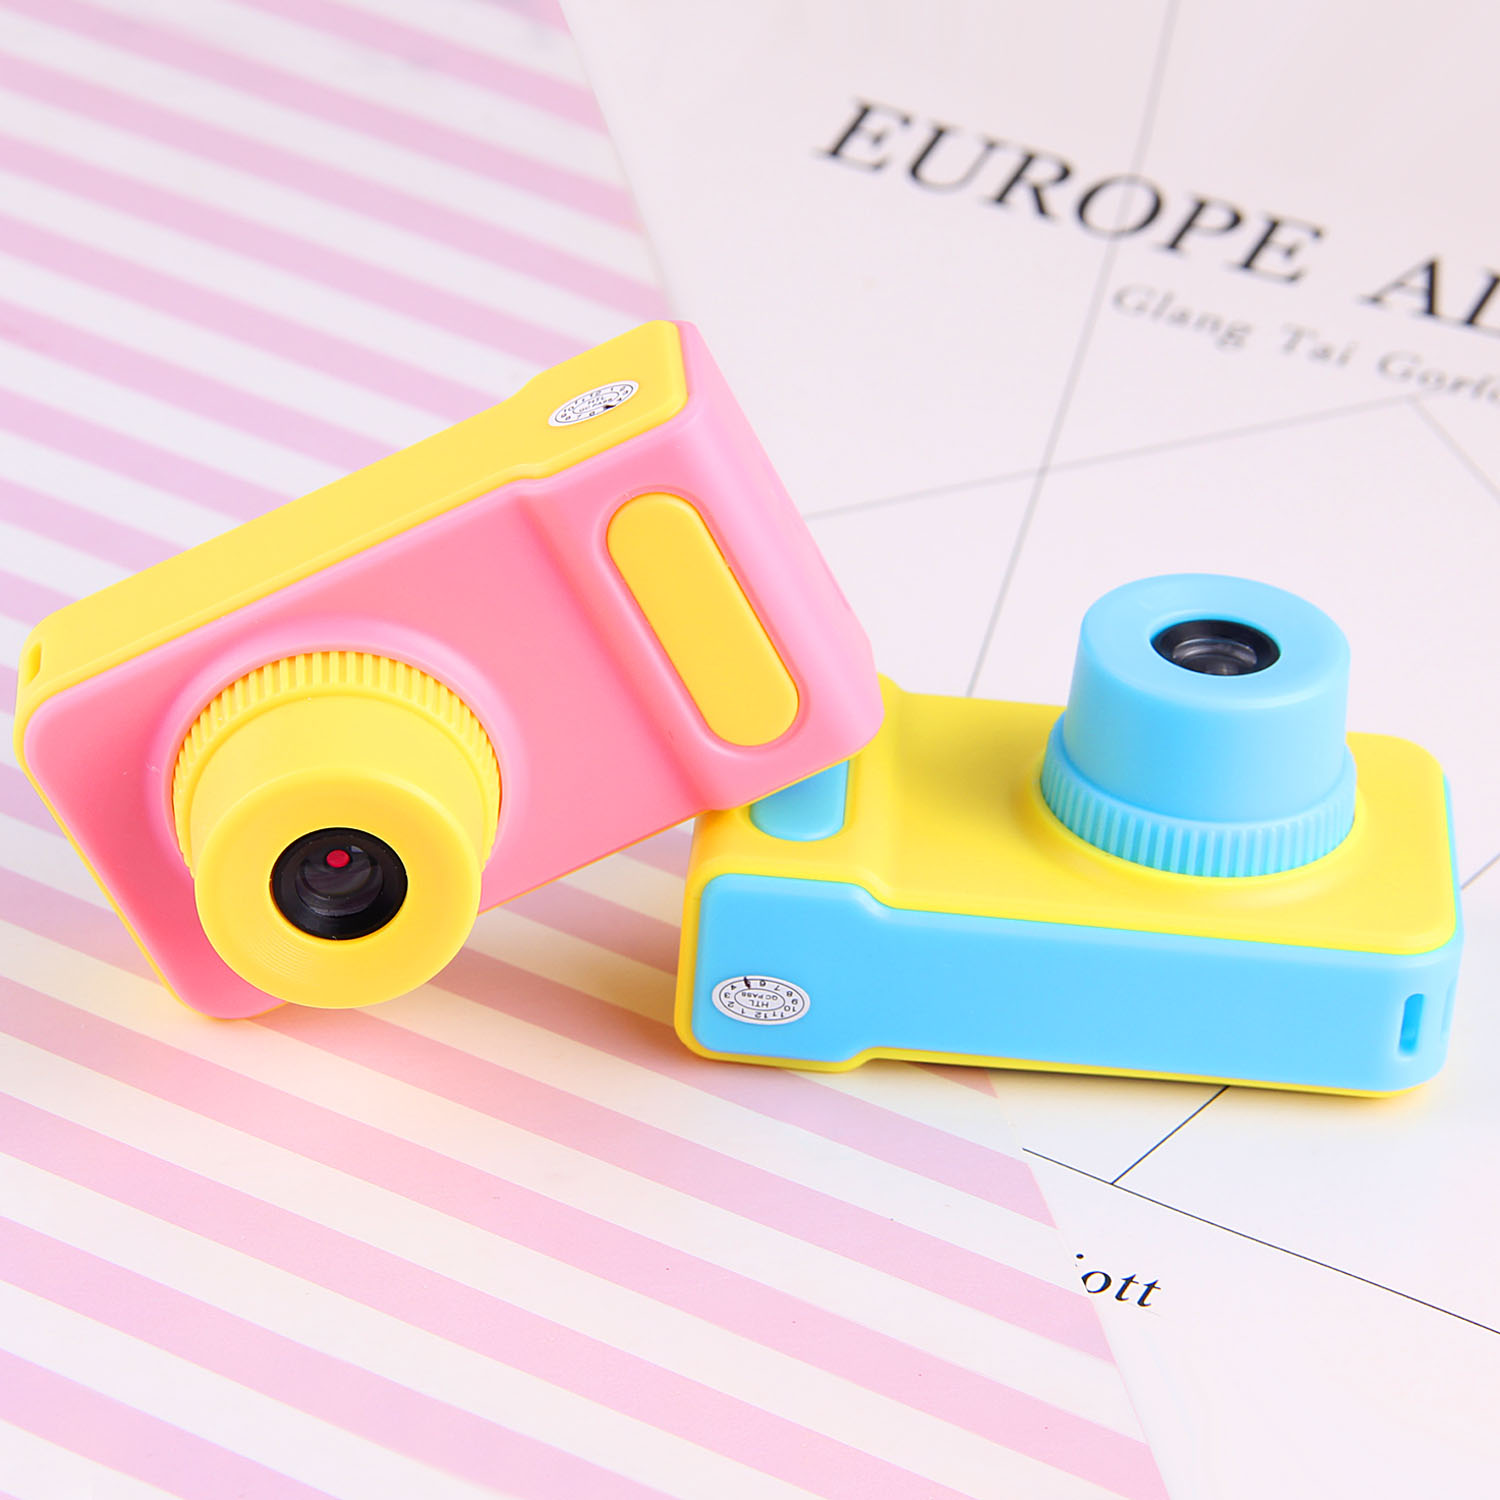 Children Multilingual Digital Camera Toy 1080P Mini Cute Screen Digital Portable Camcorder Toy For Kids Photography Outdoor Gift